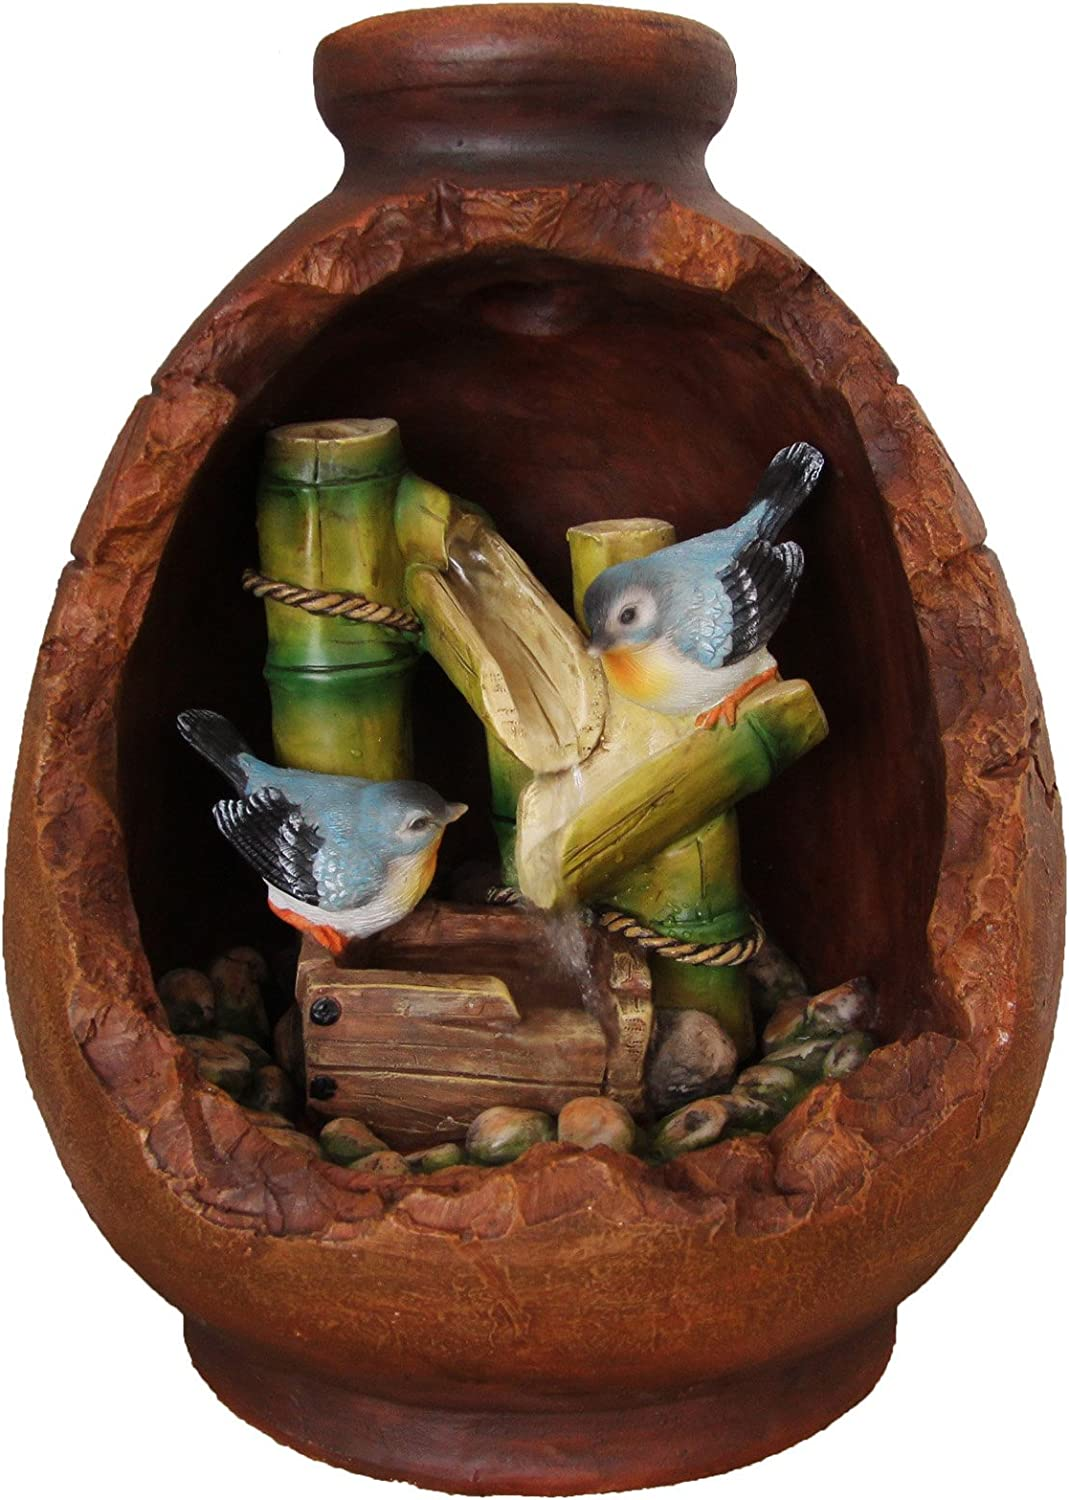 SINTECHNO Max 46% OFF SNF15135 Aristic OFFicial Sculptural Birds on in Bamboo Nesting